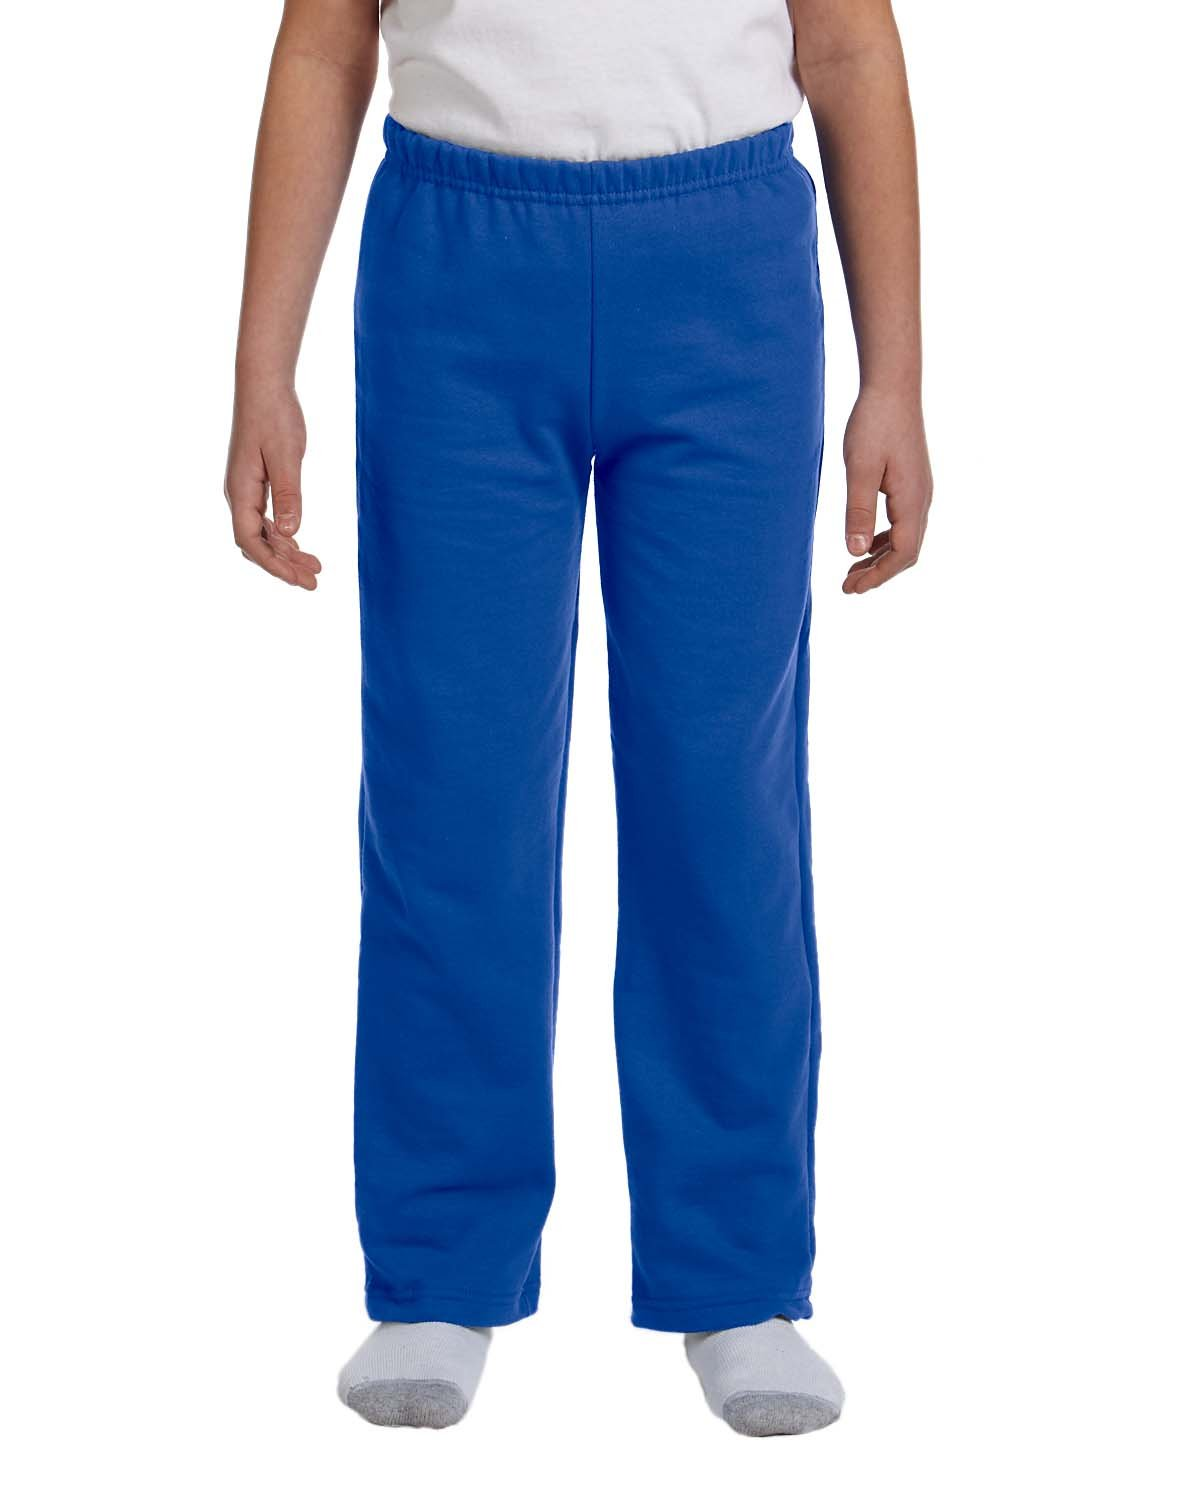 Gildan Boys 7.75 Oz. Heavy Blend 50/50 Sweatpants (G184B) -Royal -M-12PK